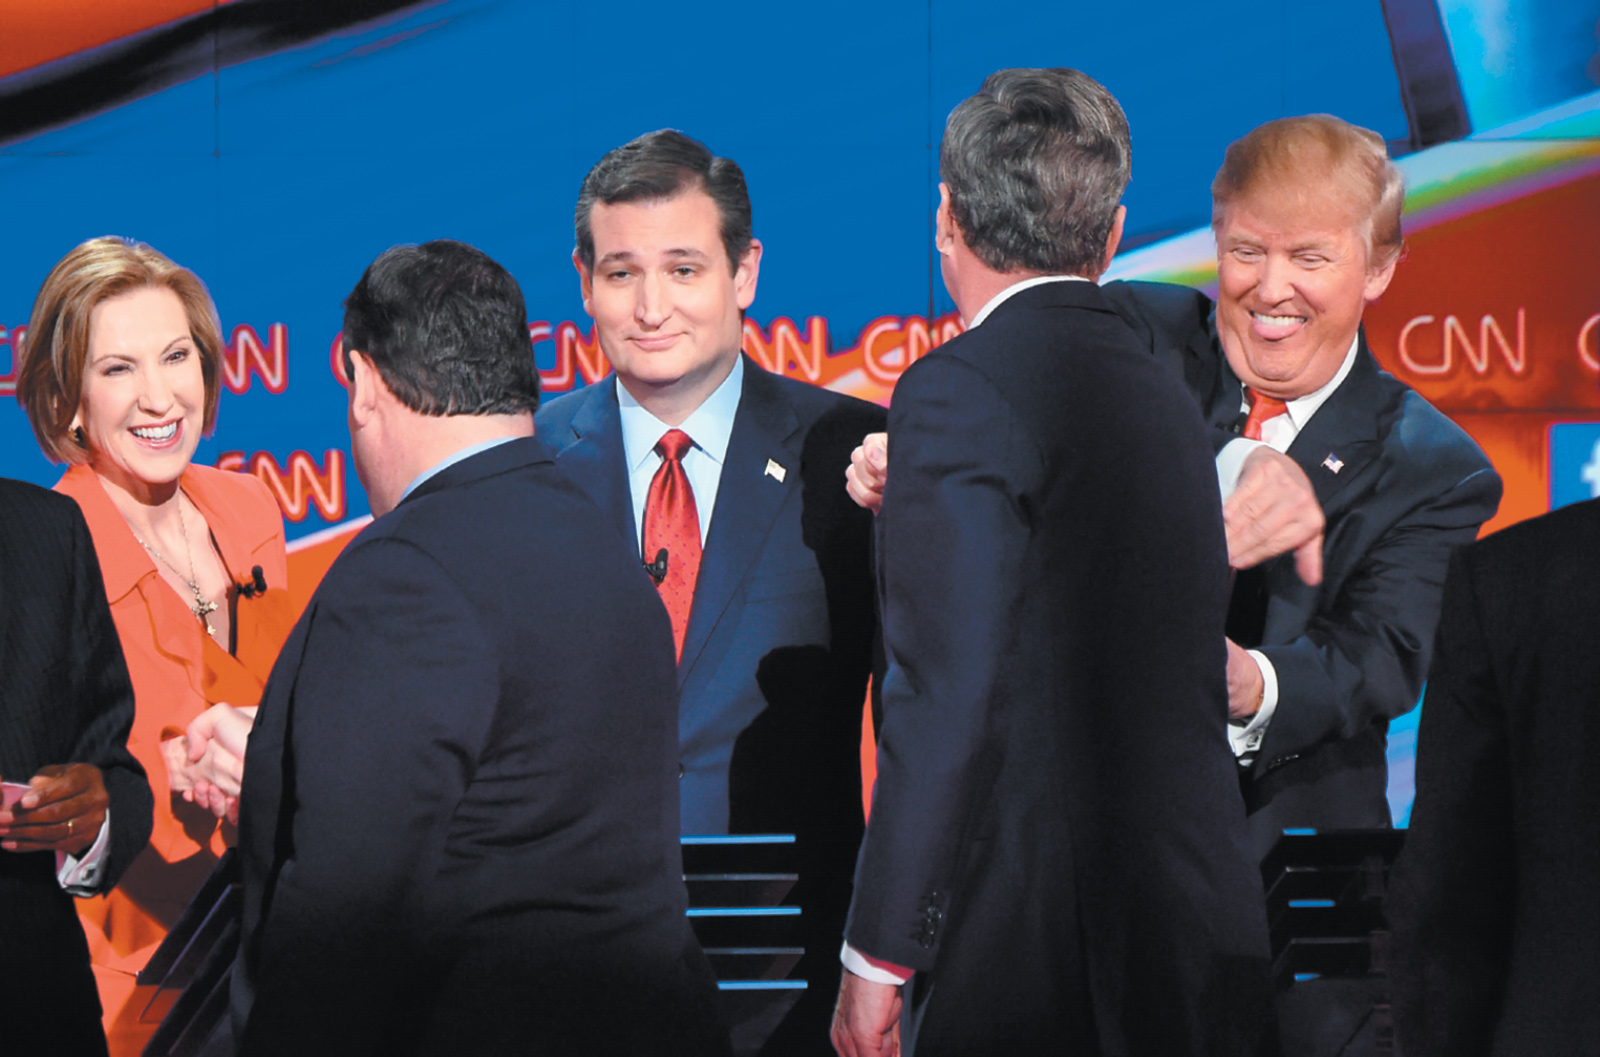 Carly Fiorina, Chris Christie, Ted Cruz, Jeb Bush, and Donald Trump at the Republican presidential debate in Las Vegas, December 2015